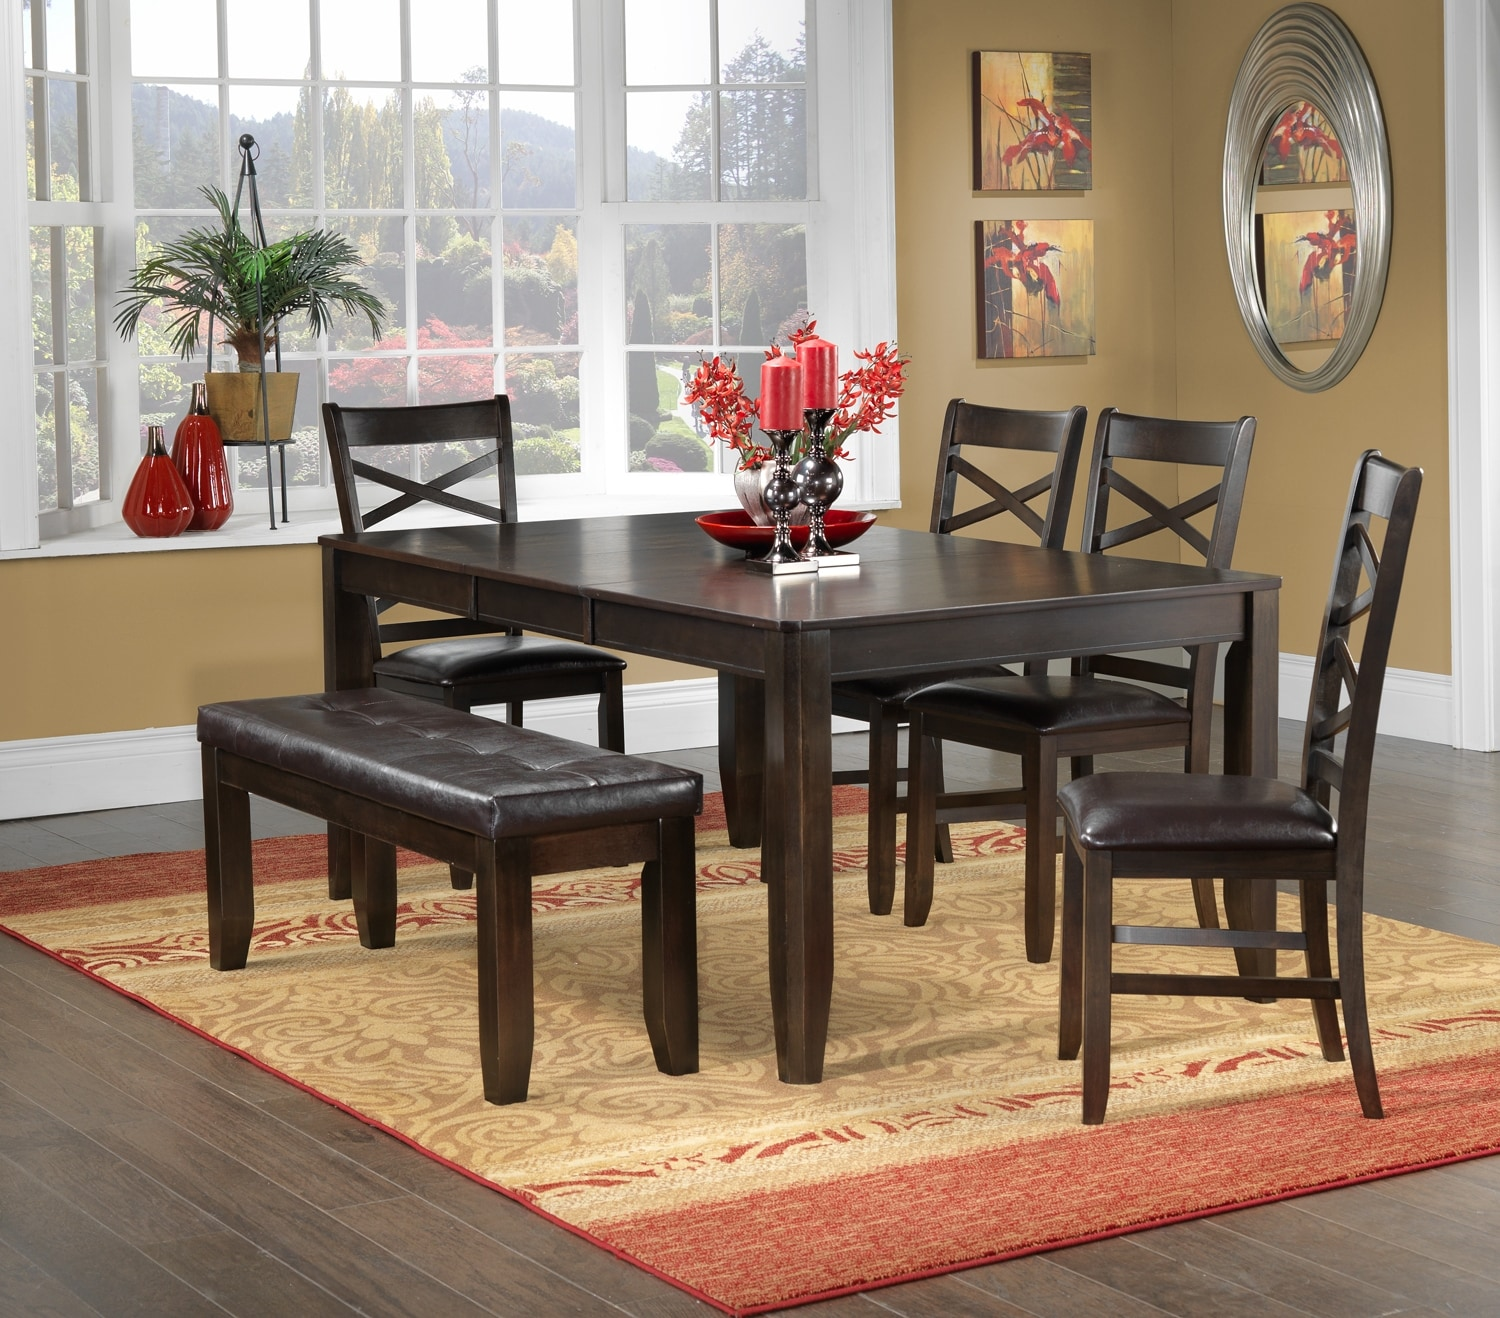 Casual Dining Room Furniture The Gina Collection Gina Table